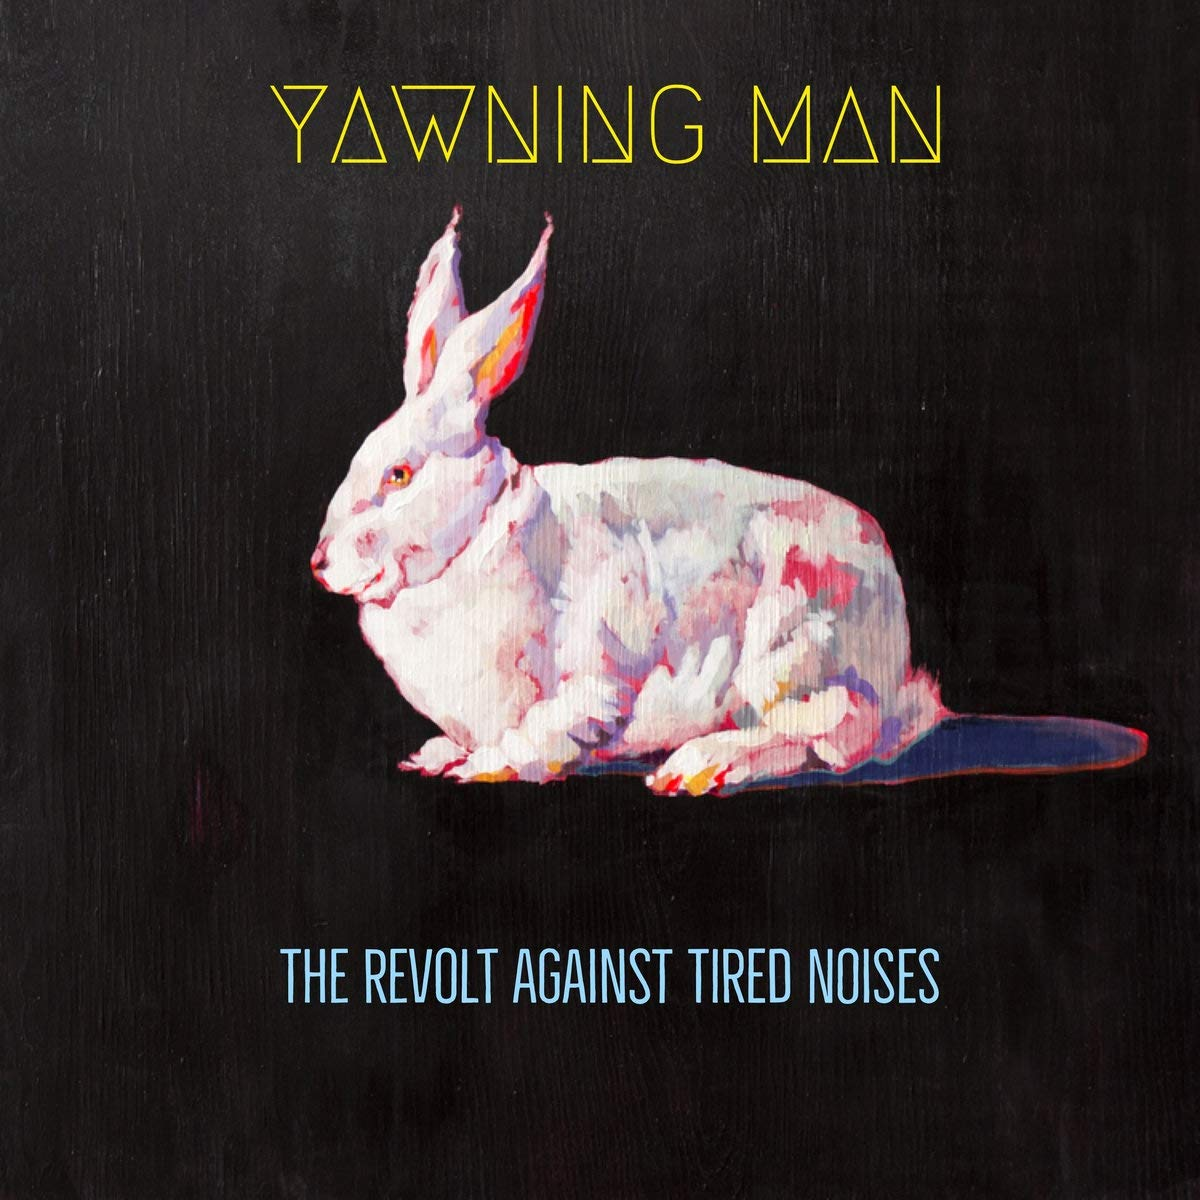 Vinilo : Yawning Man - Revolt Against Tired Noises (LP Vinyl)